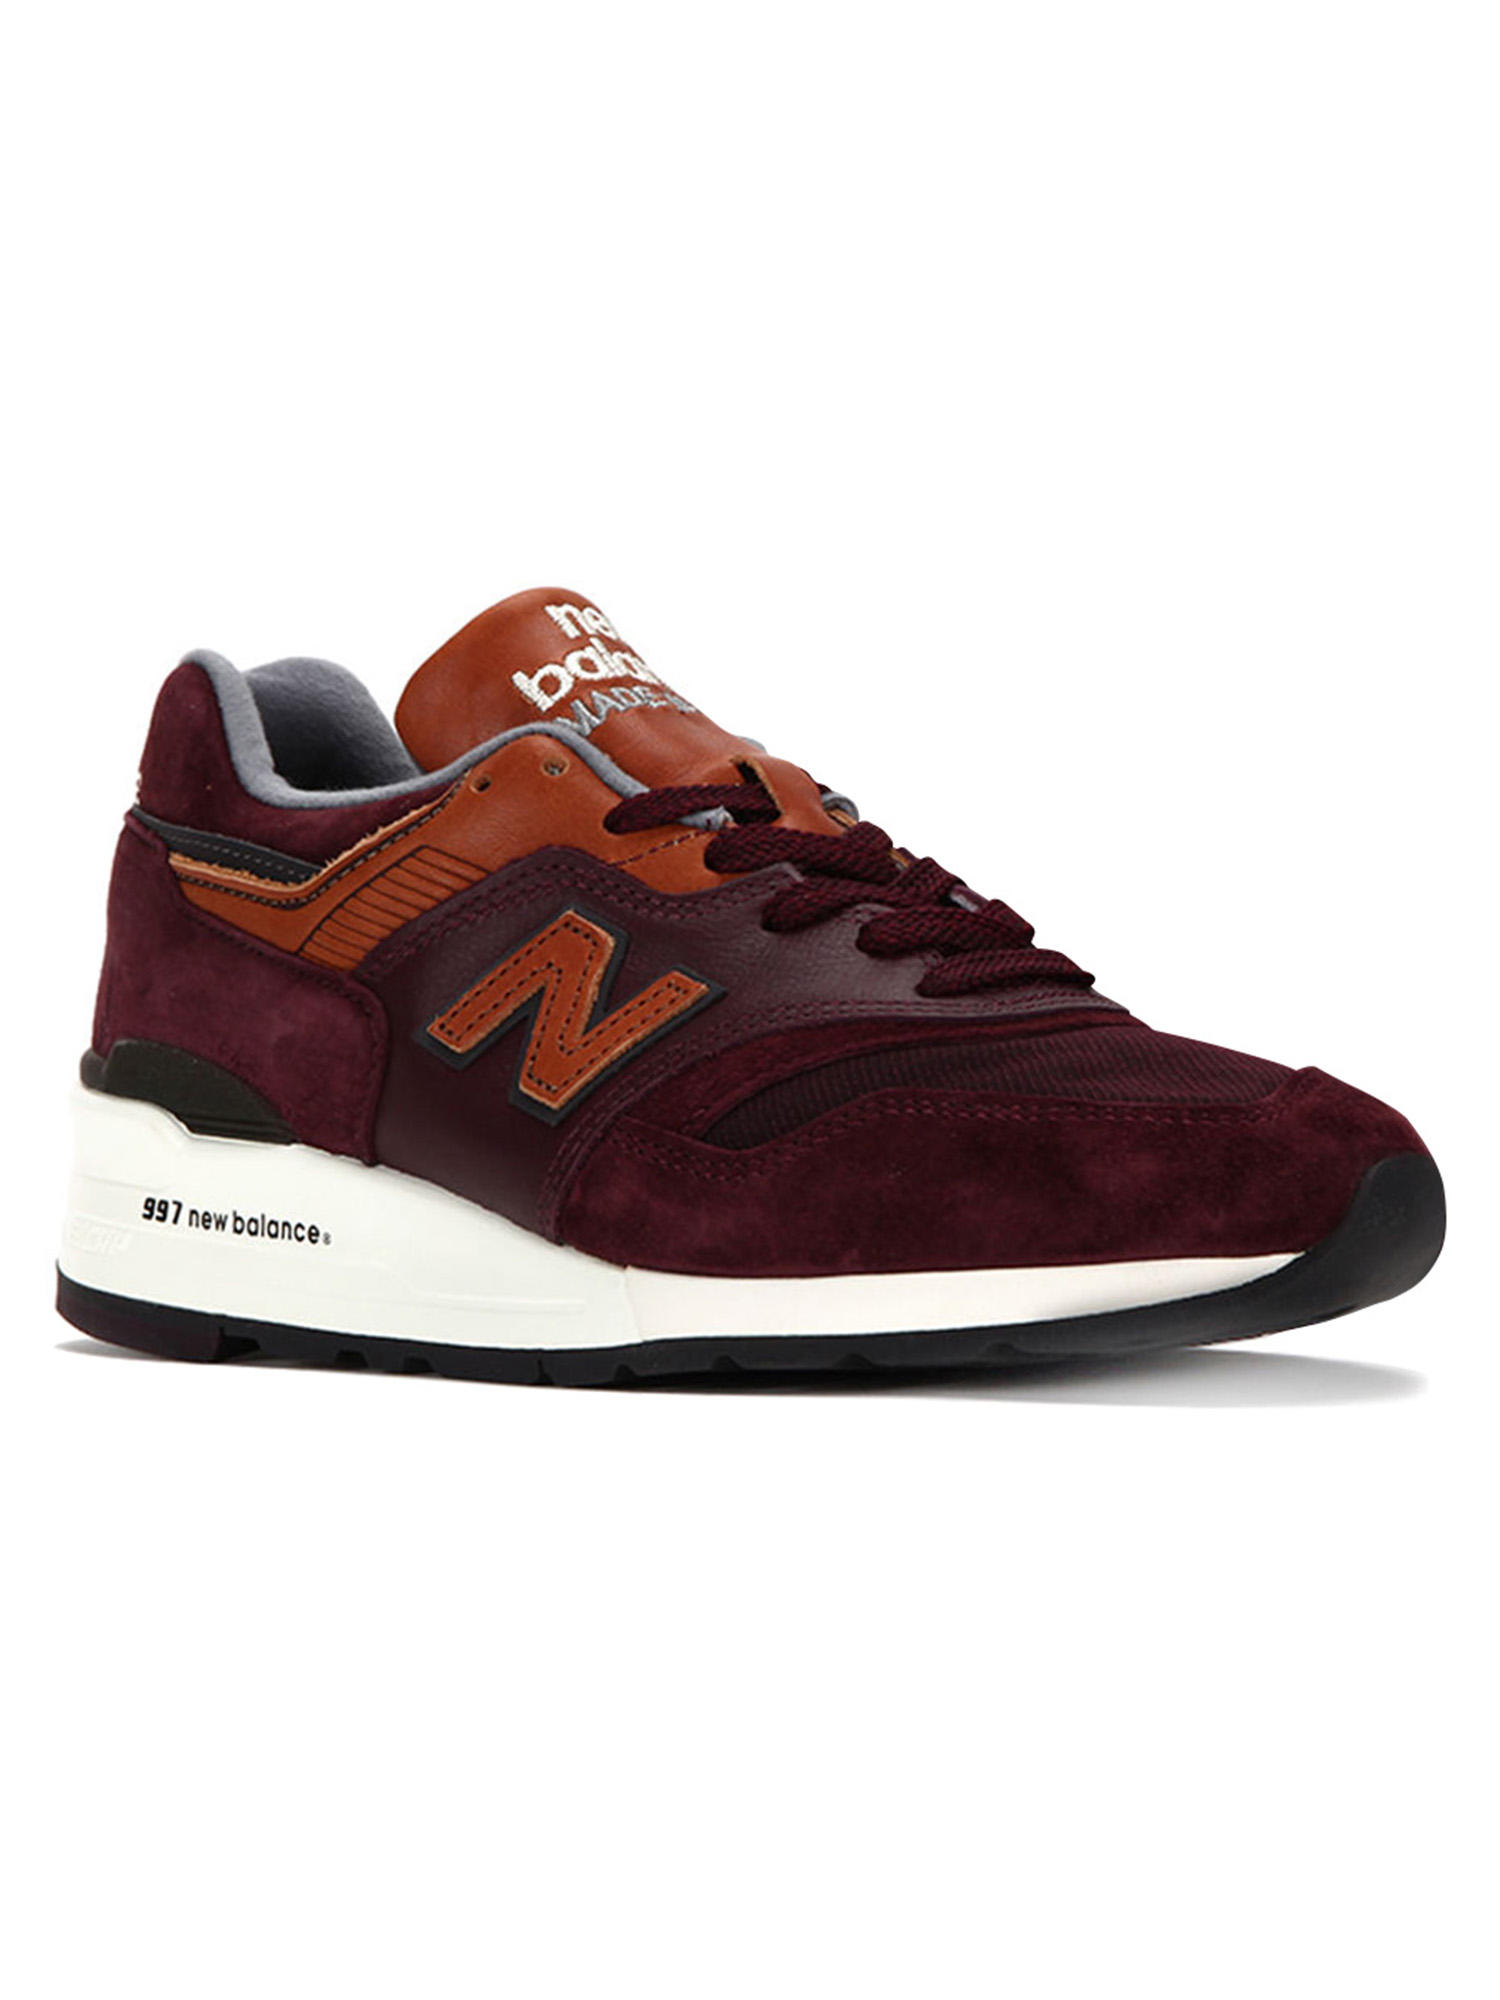 new balance 997 dslr burgundy